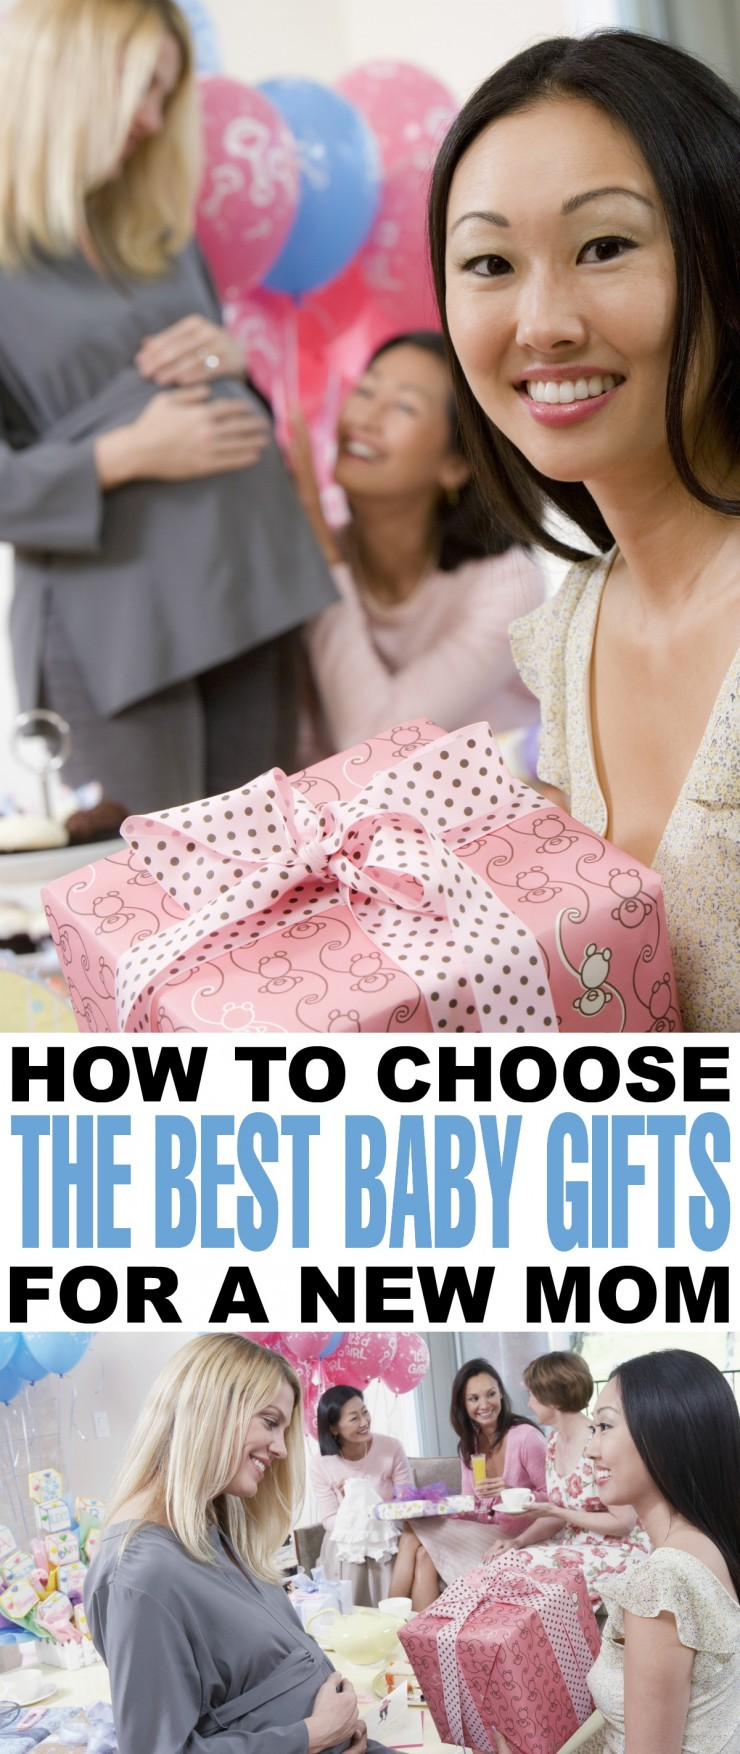 How to Choose the Best Baby Gifts for a New Mom - tips and ideas you need to know before your next baby shower!